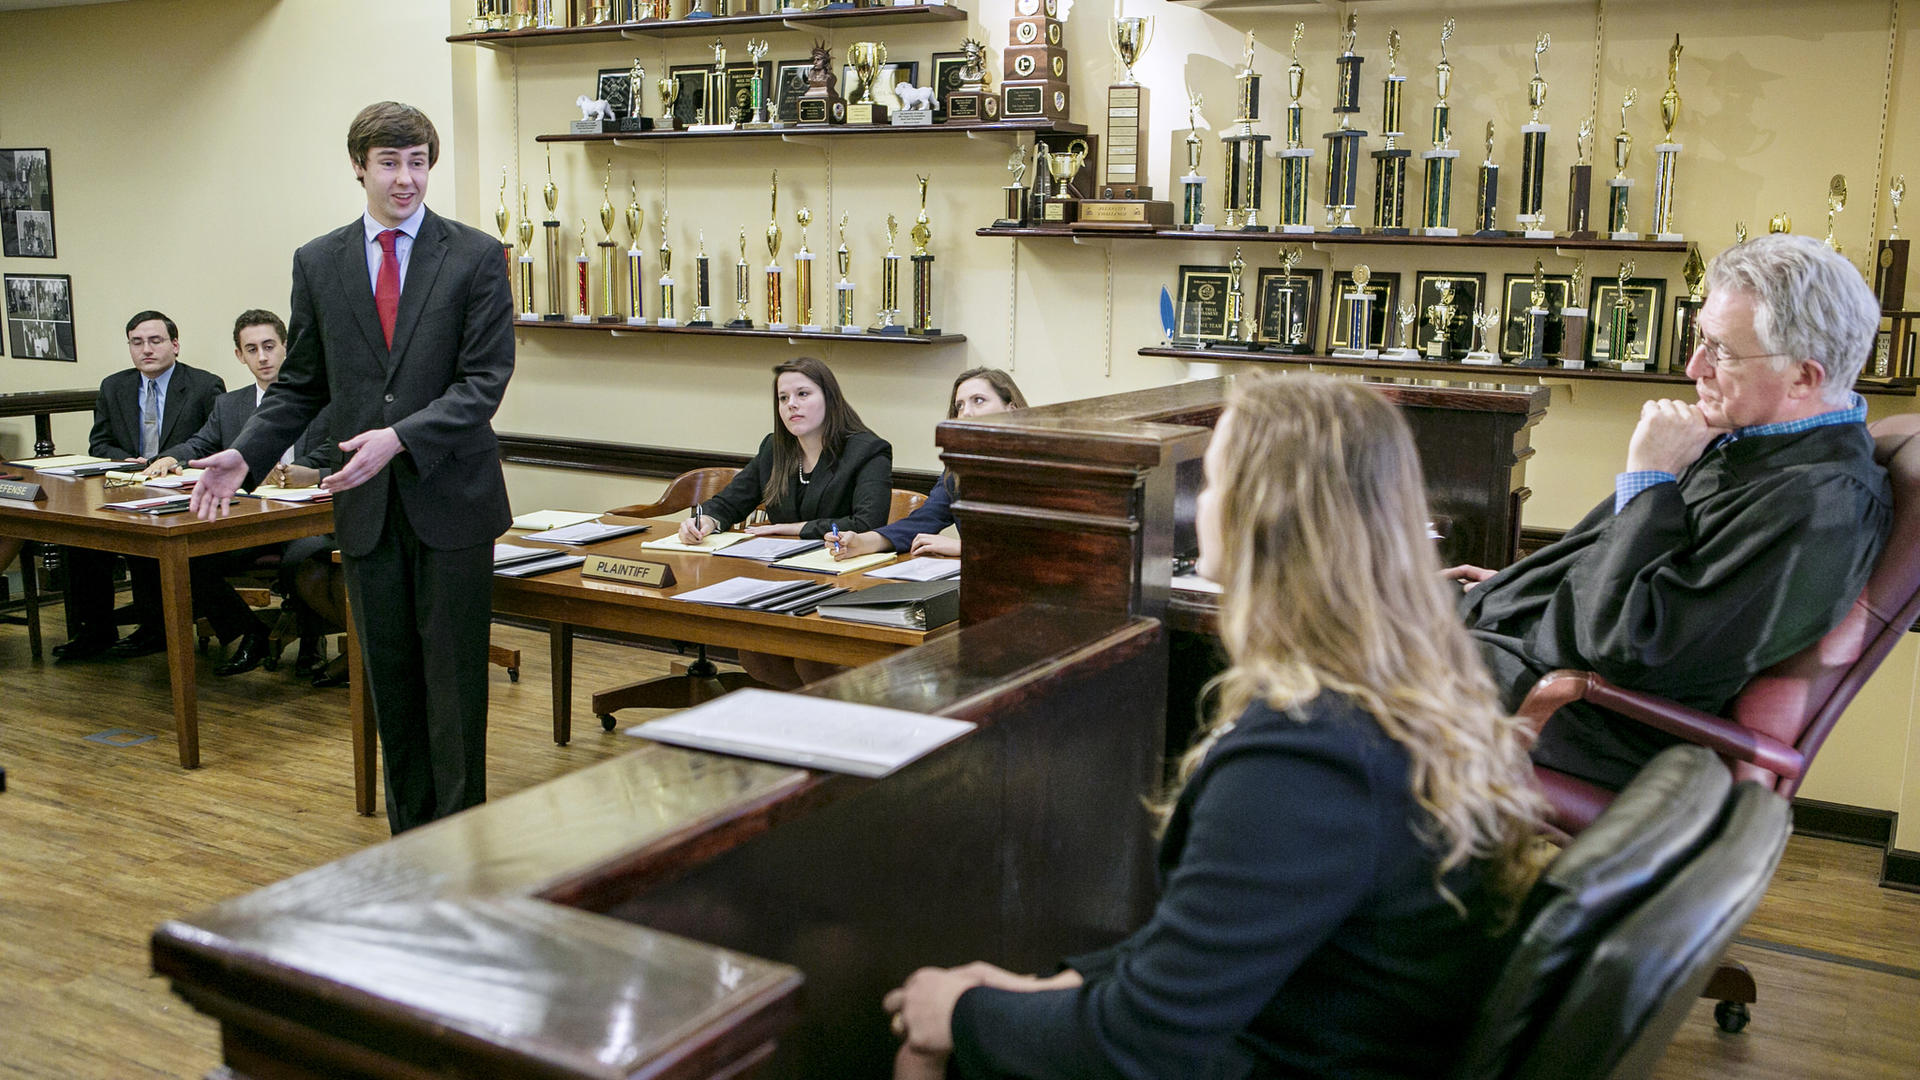 Students at mock trial practice.